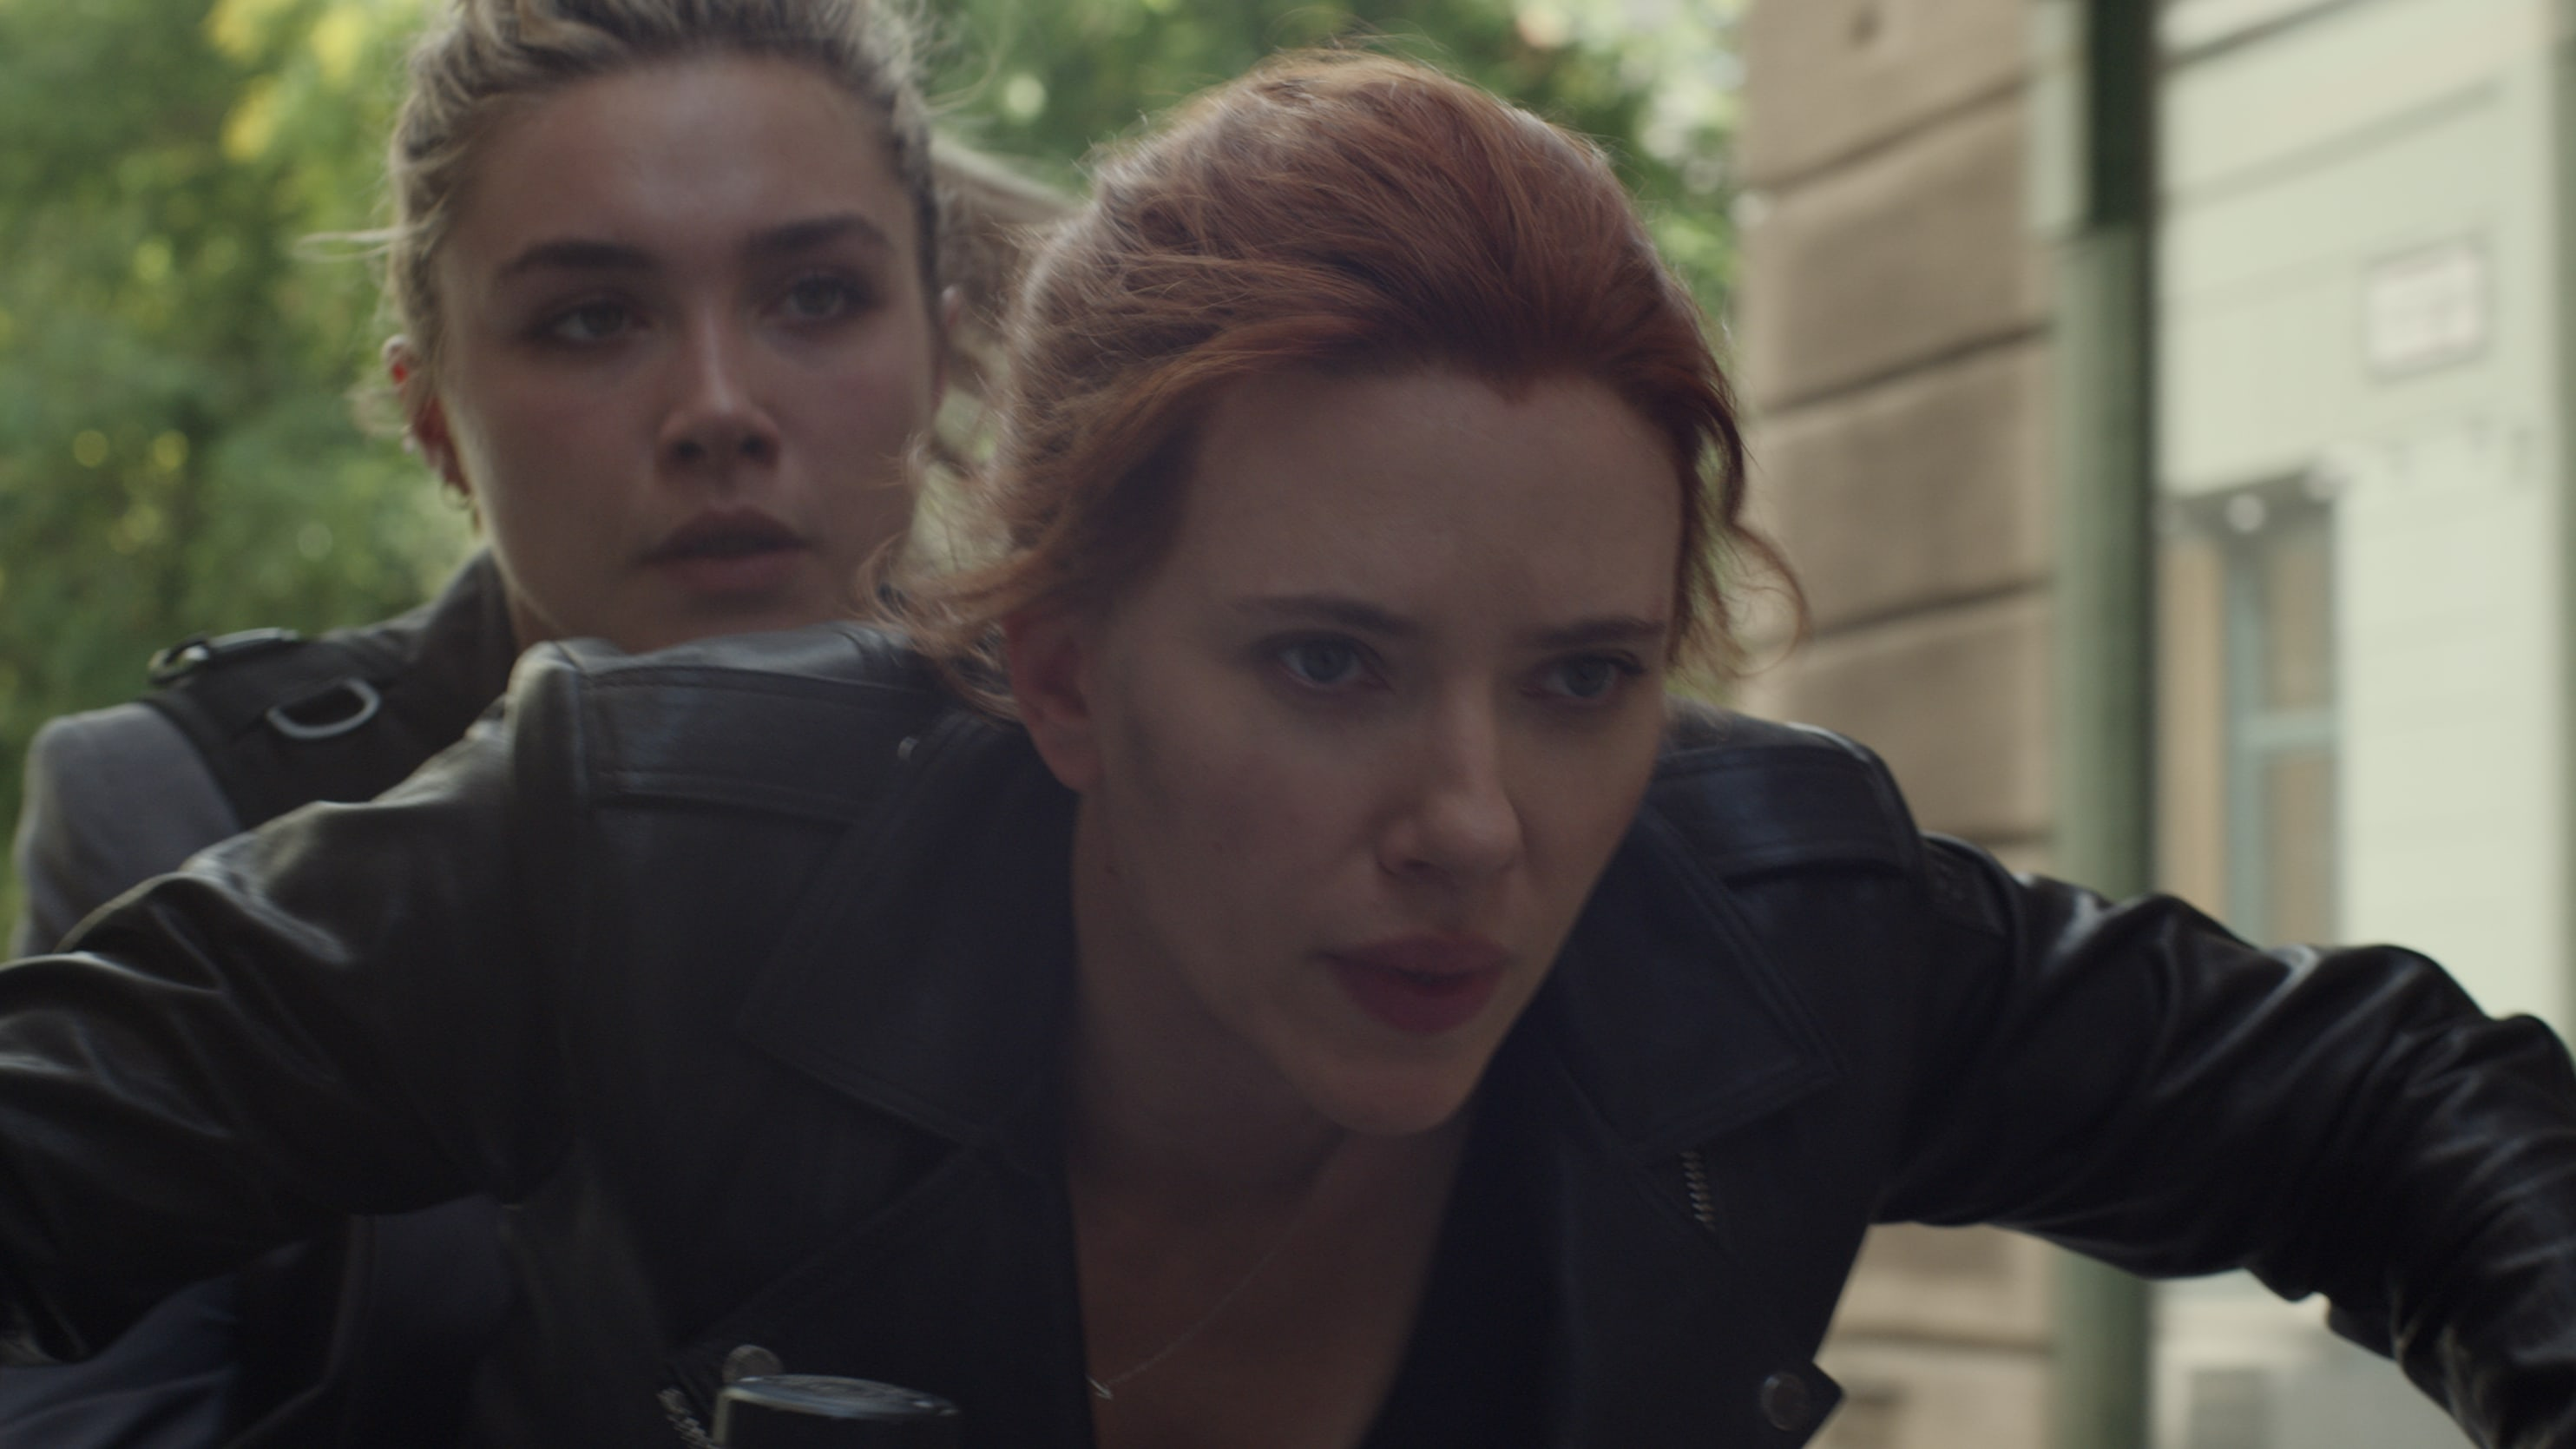 Marvel Studios' BLACK WIDOW..L to R: Yelena (Florence Pugh) and Black Widow/Natasha Romanoff (Scarlett Johansson)..Photo: Film Frame..©Marvel Studios 2020